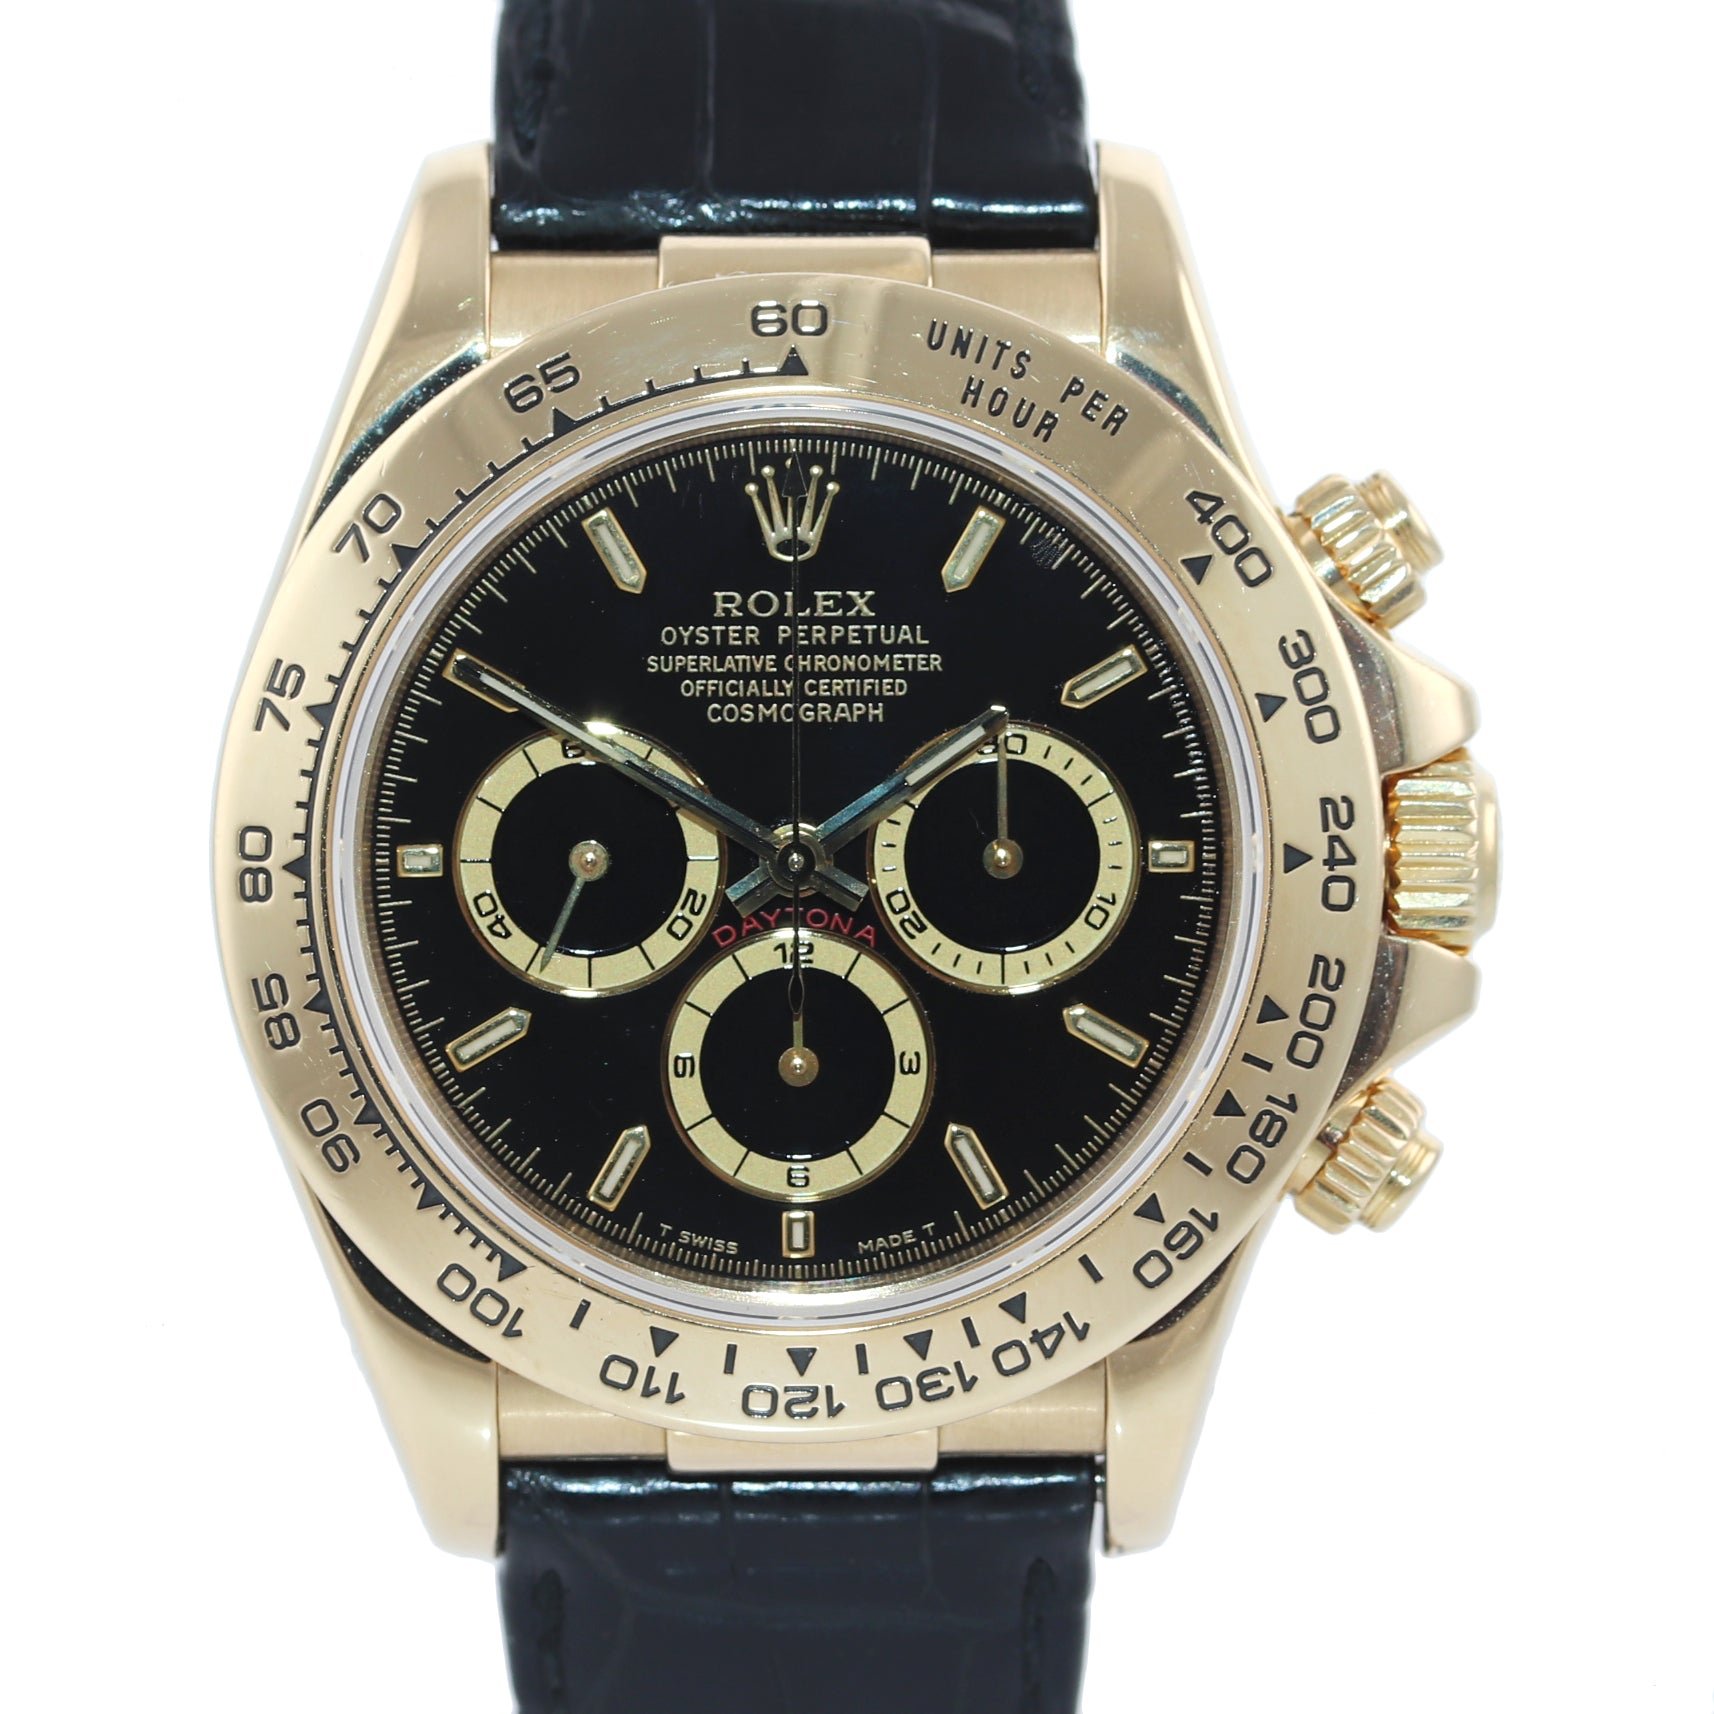 MINT Rolex Daytona Zenith 16518 Black Tritium Dial 18k Yellow Gold Leather Watch